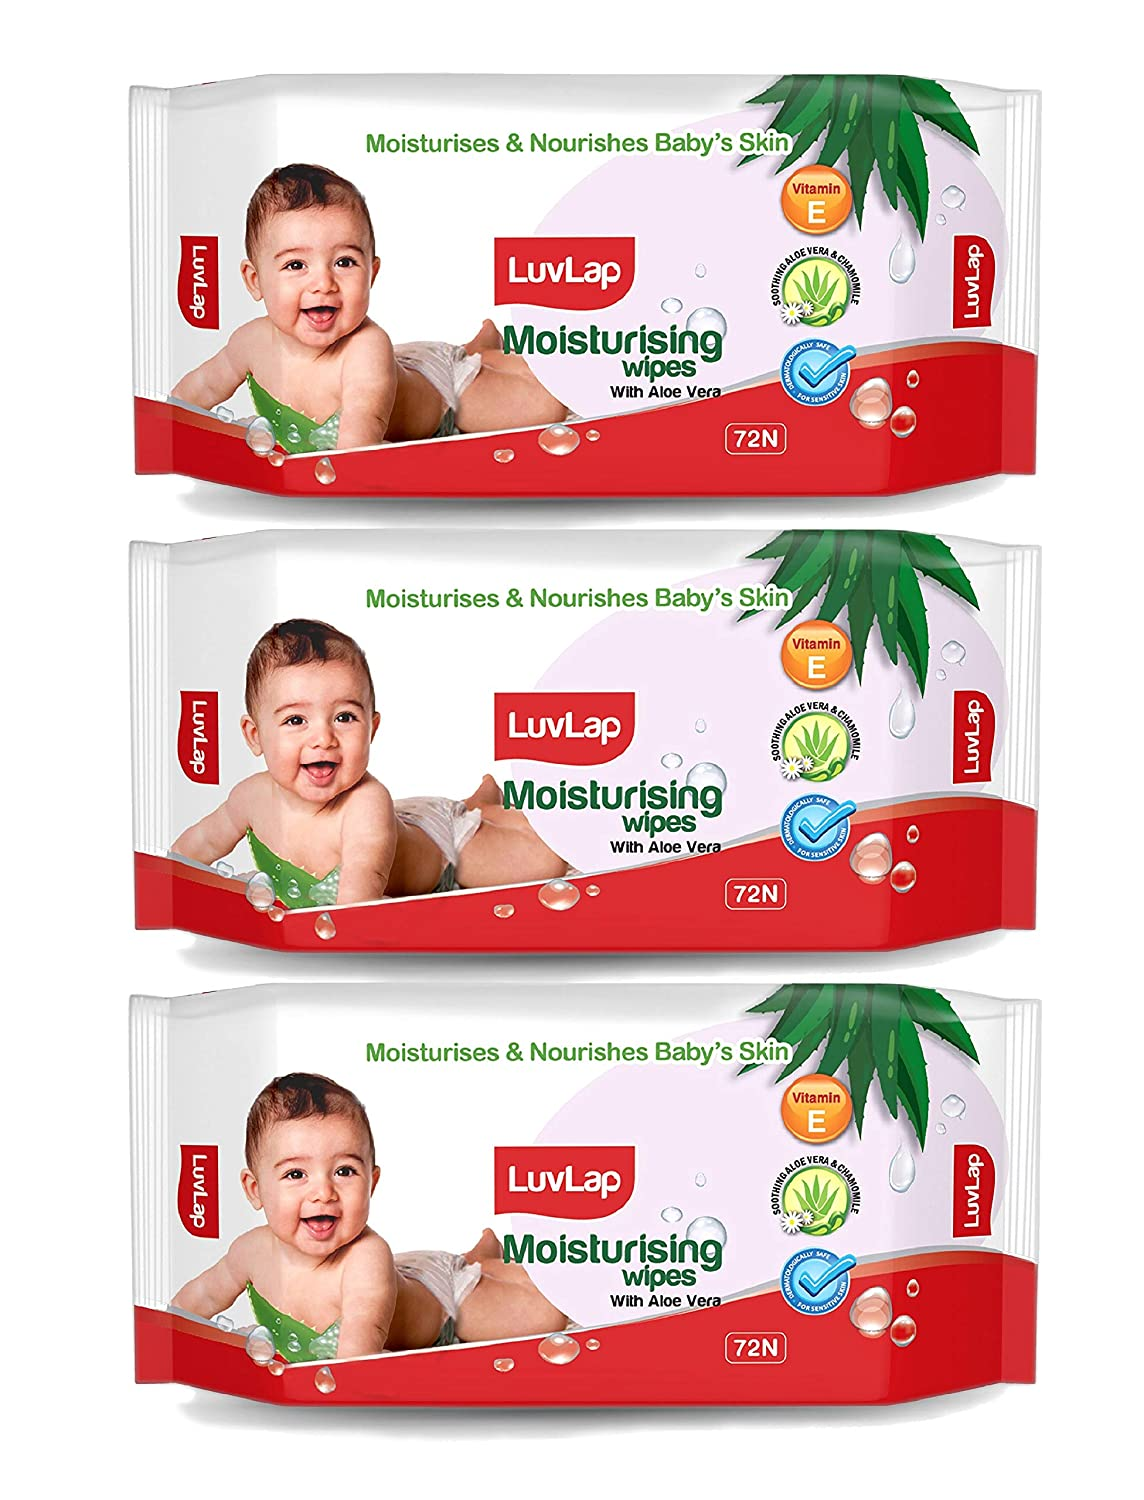 LuvLap Paraben Free Baby Wipes with Aloe Vera (72 Wipes/Pack, Pack of 3)